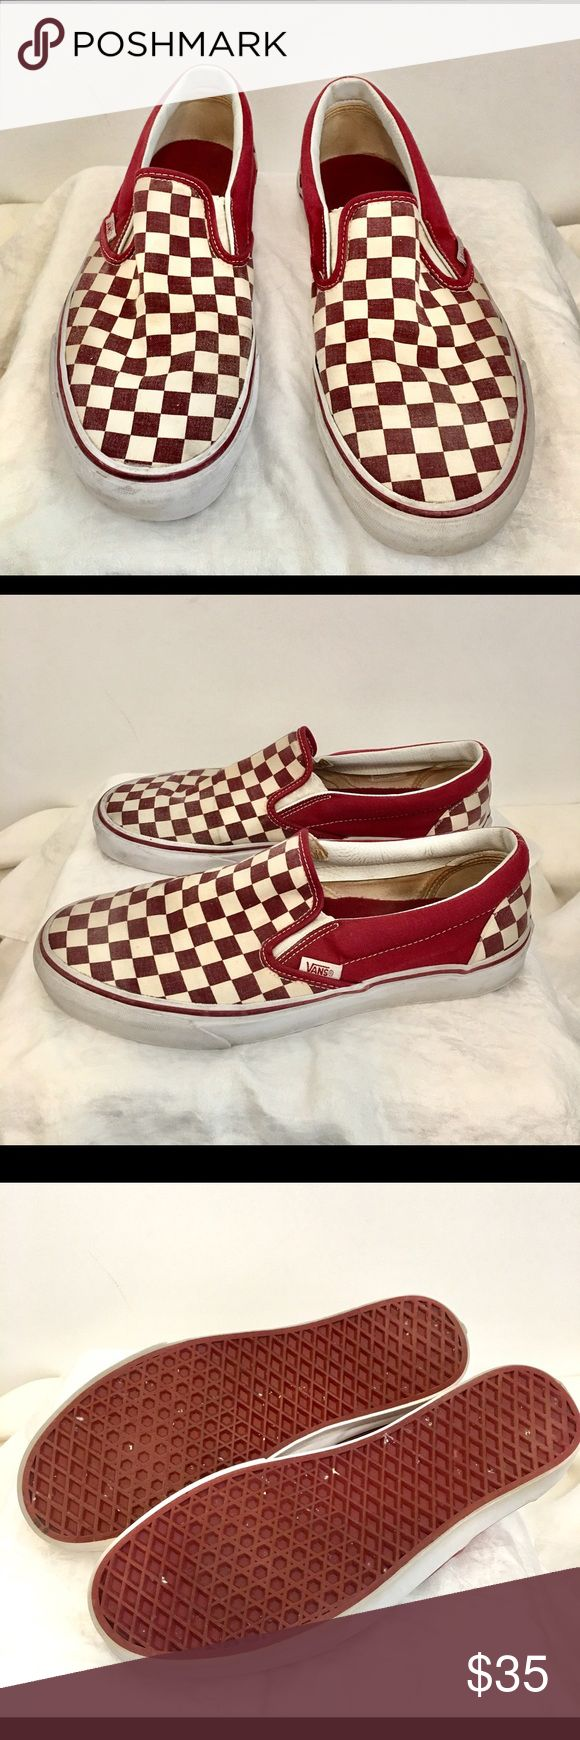 VANS Classic Slip-On Checkerboard, Original & Rare VANS Classic Slip-On  Checkerboard / Original & Rare / Retro / Red & White. Vans Shoes Athletic Shoes